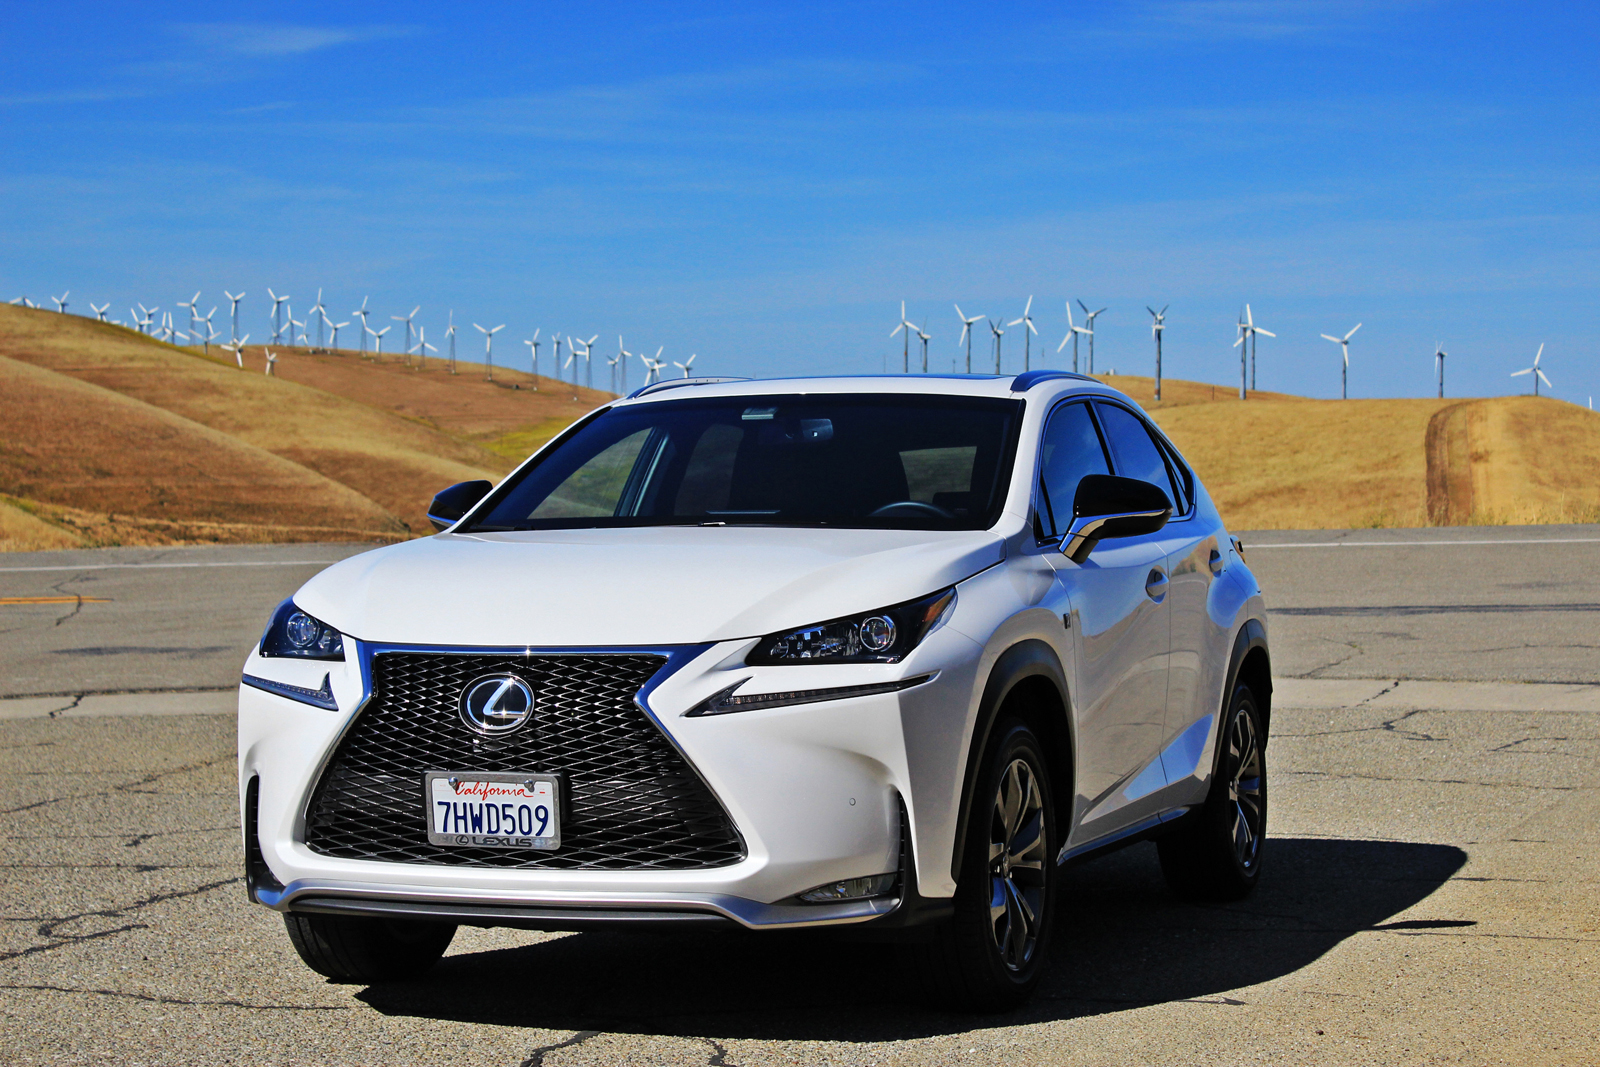 lexus 330 suv with 2015 Lexus Nx 200t F Sport on 2015 Lexus Nx 200t F Sport in addition 2018 Ford Edge Sport Releases besides Toyota harrier a1250685021b2966918 p besides Lexus rc 350 2015 moreover 2012 Lexus Rx 350 Pictures C23080 pi36366582.